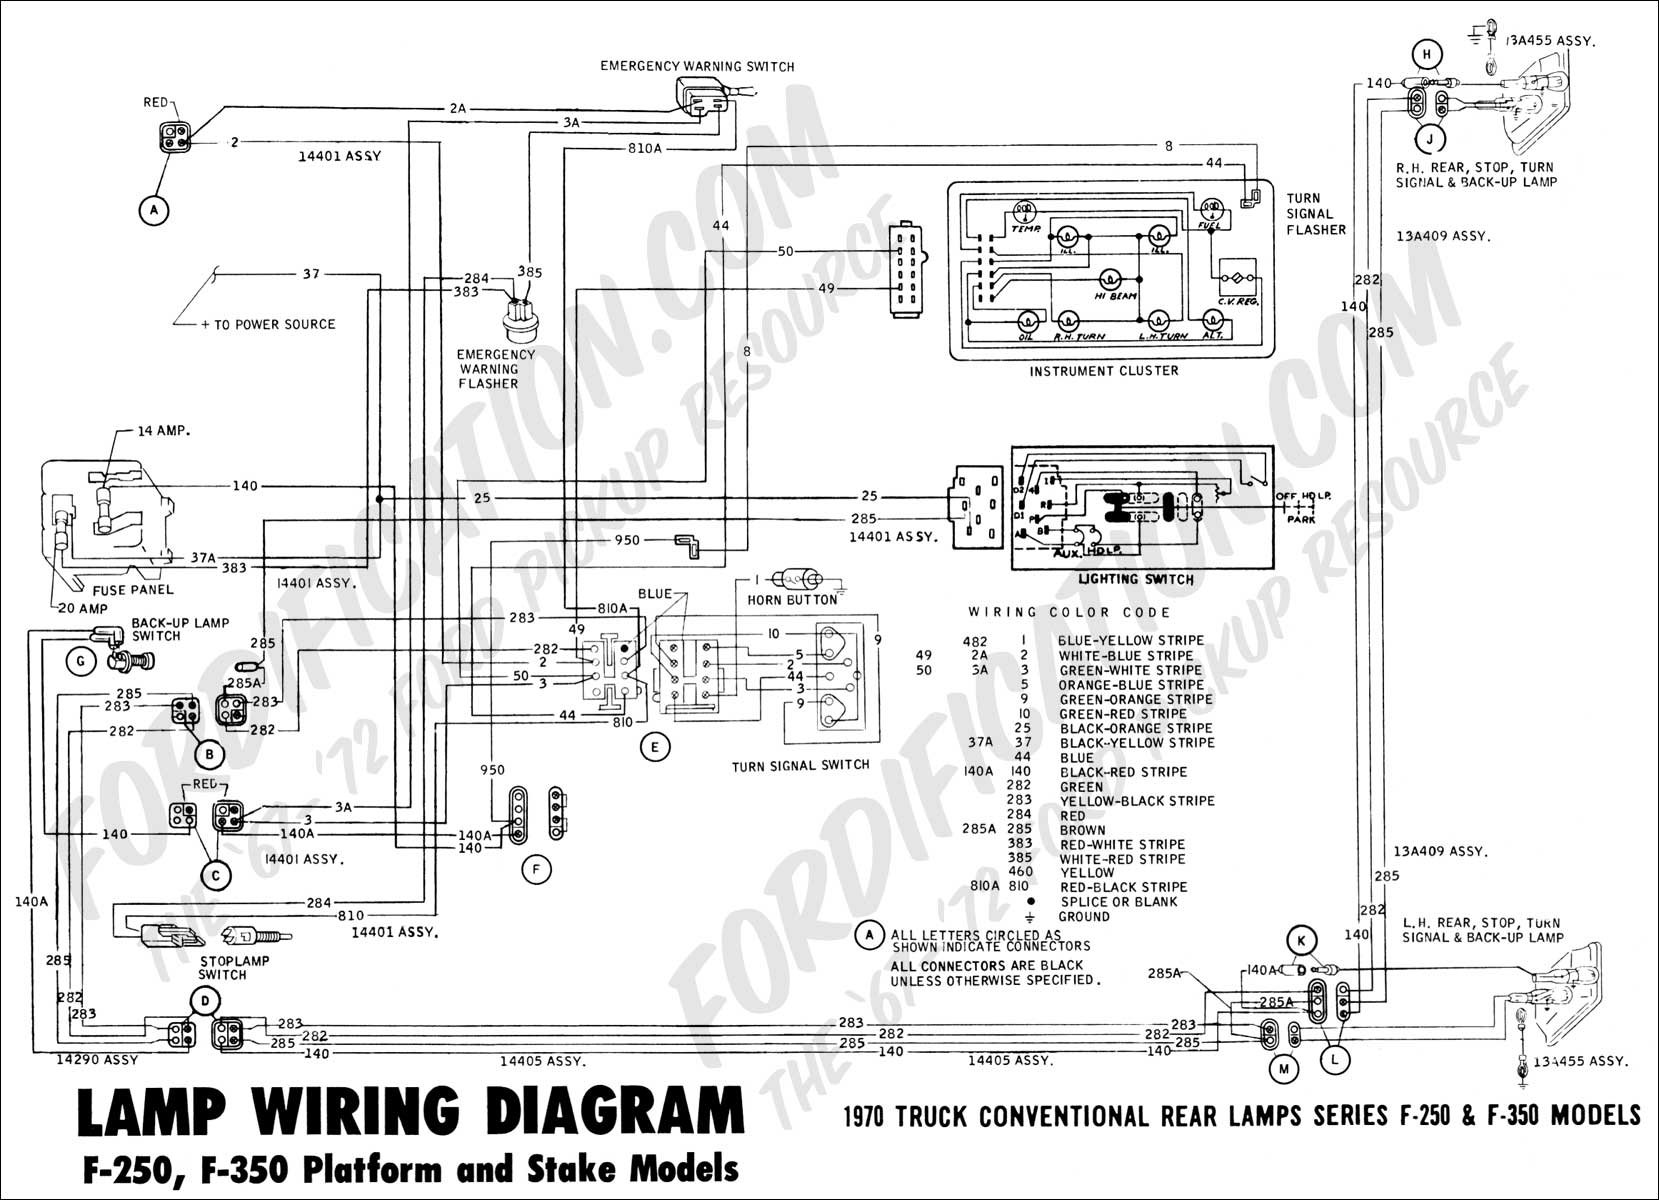 ford truck technical drawings and schematics - section h ... 1978 ford e 350 wiring diagram 1978 ford f 350 wiring diagram #1